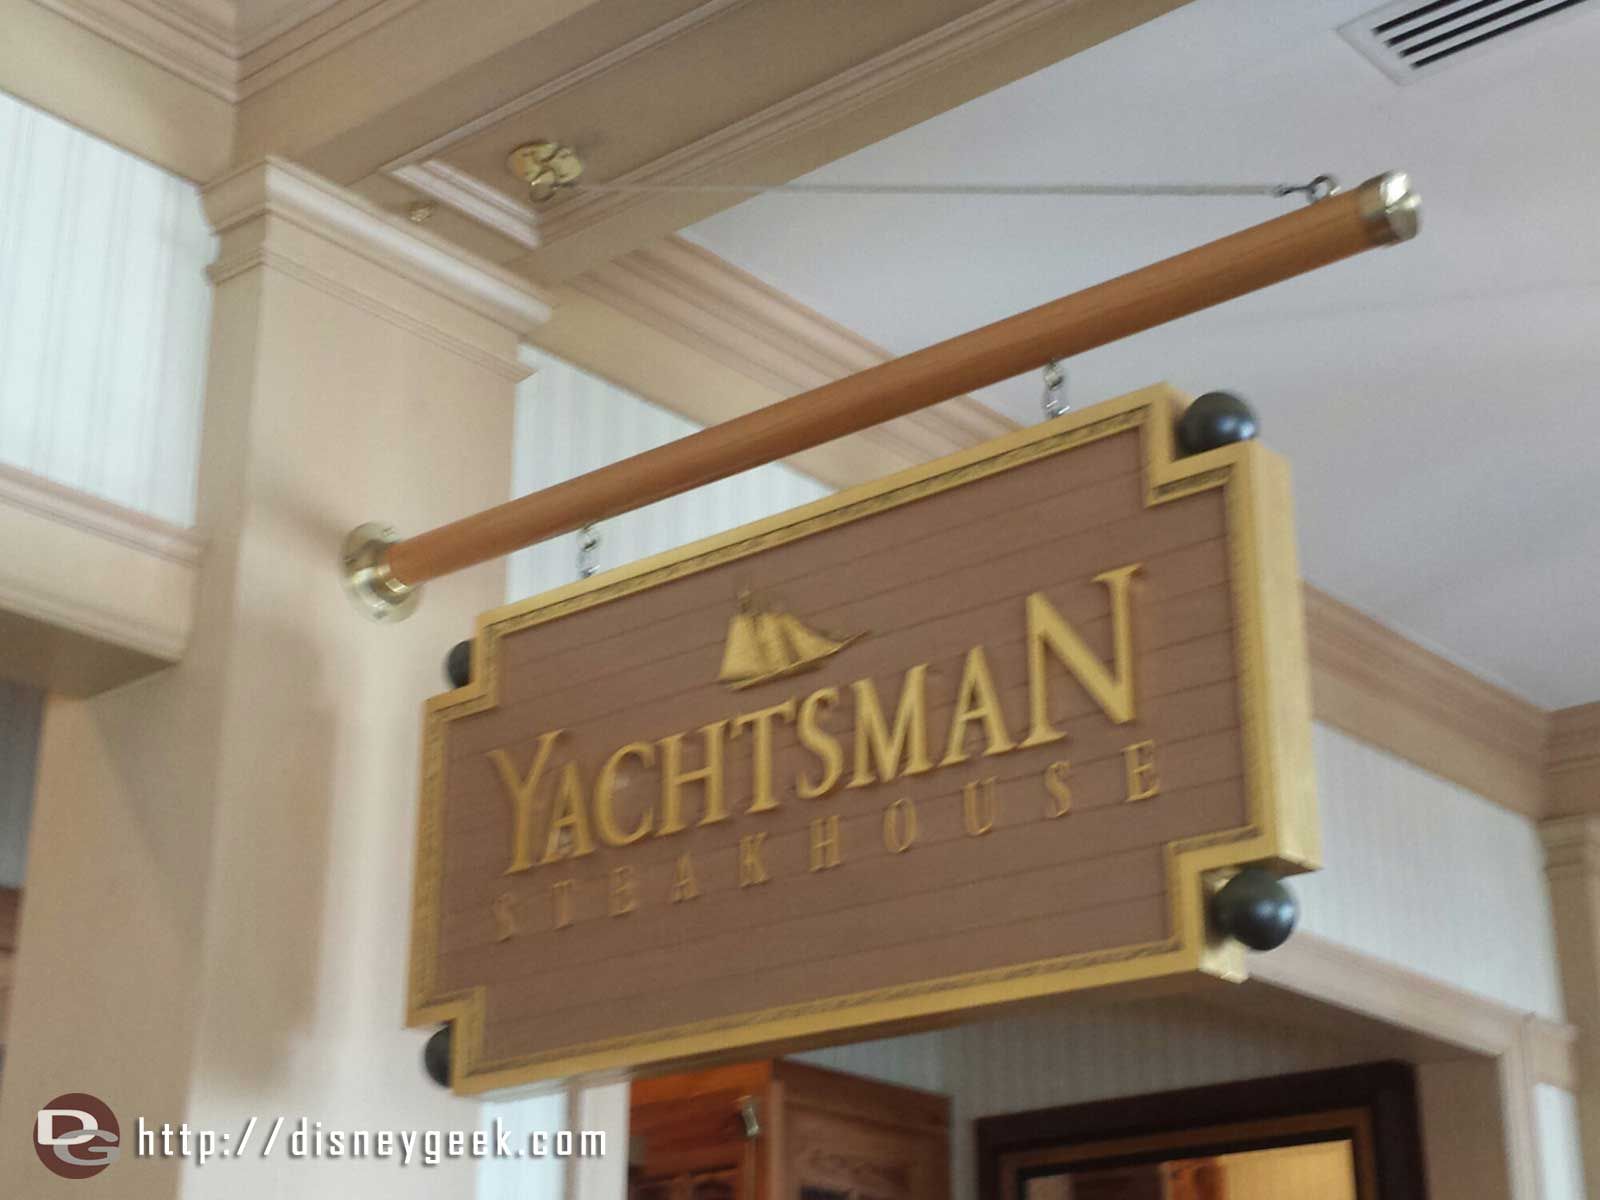 Dinner tonight at the Yachtsman Steakhouse at Disney's Yacht Club Resort